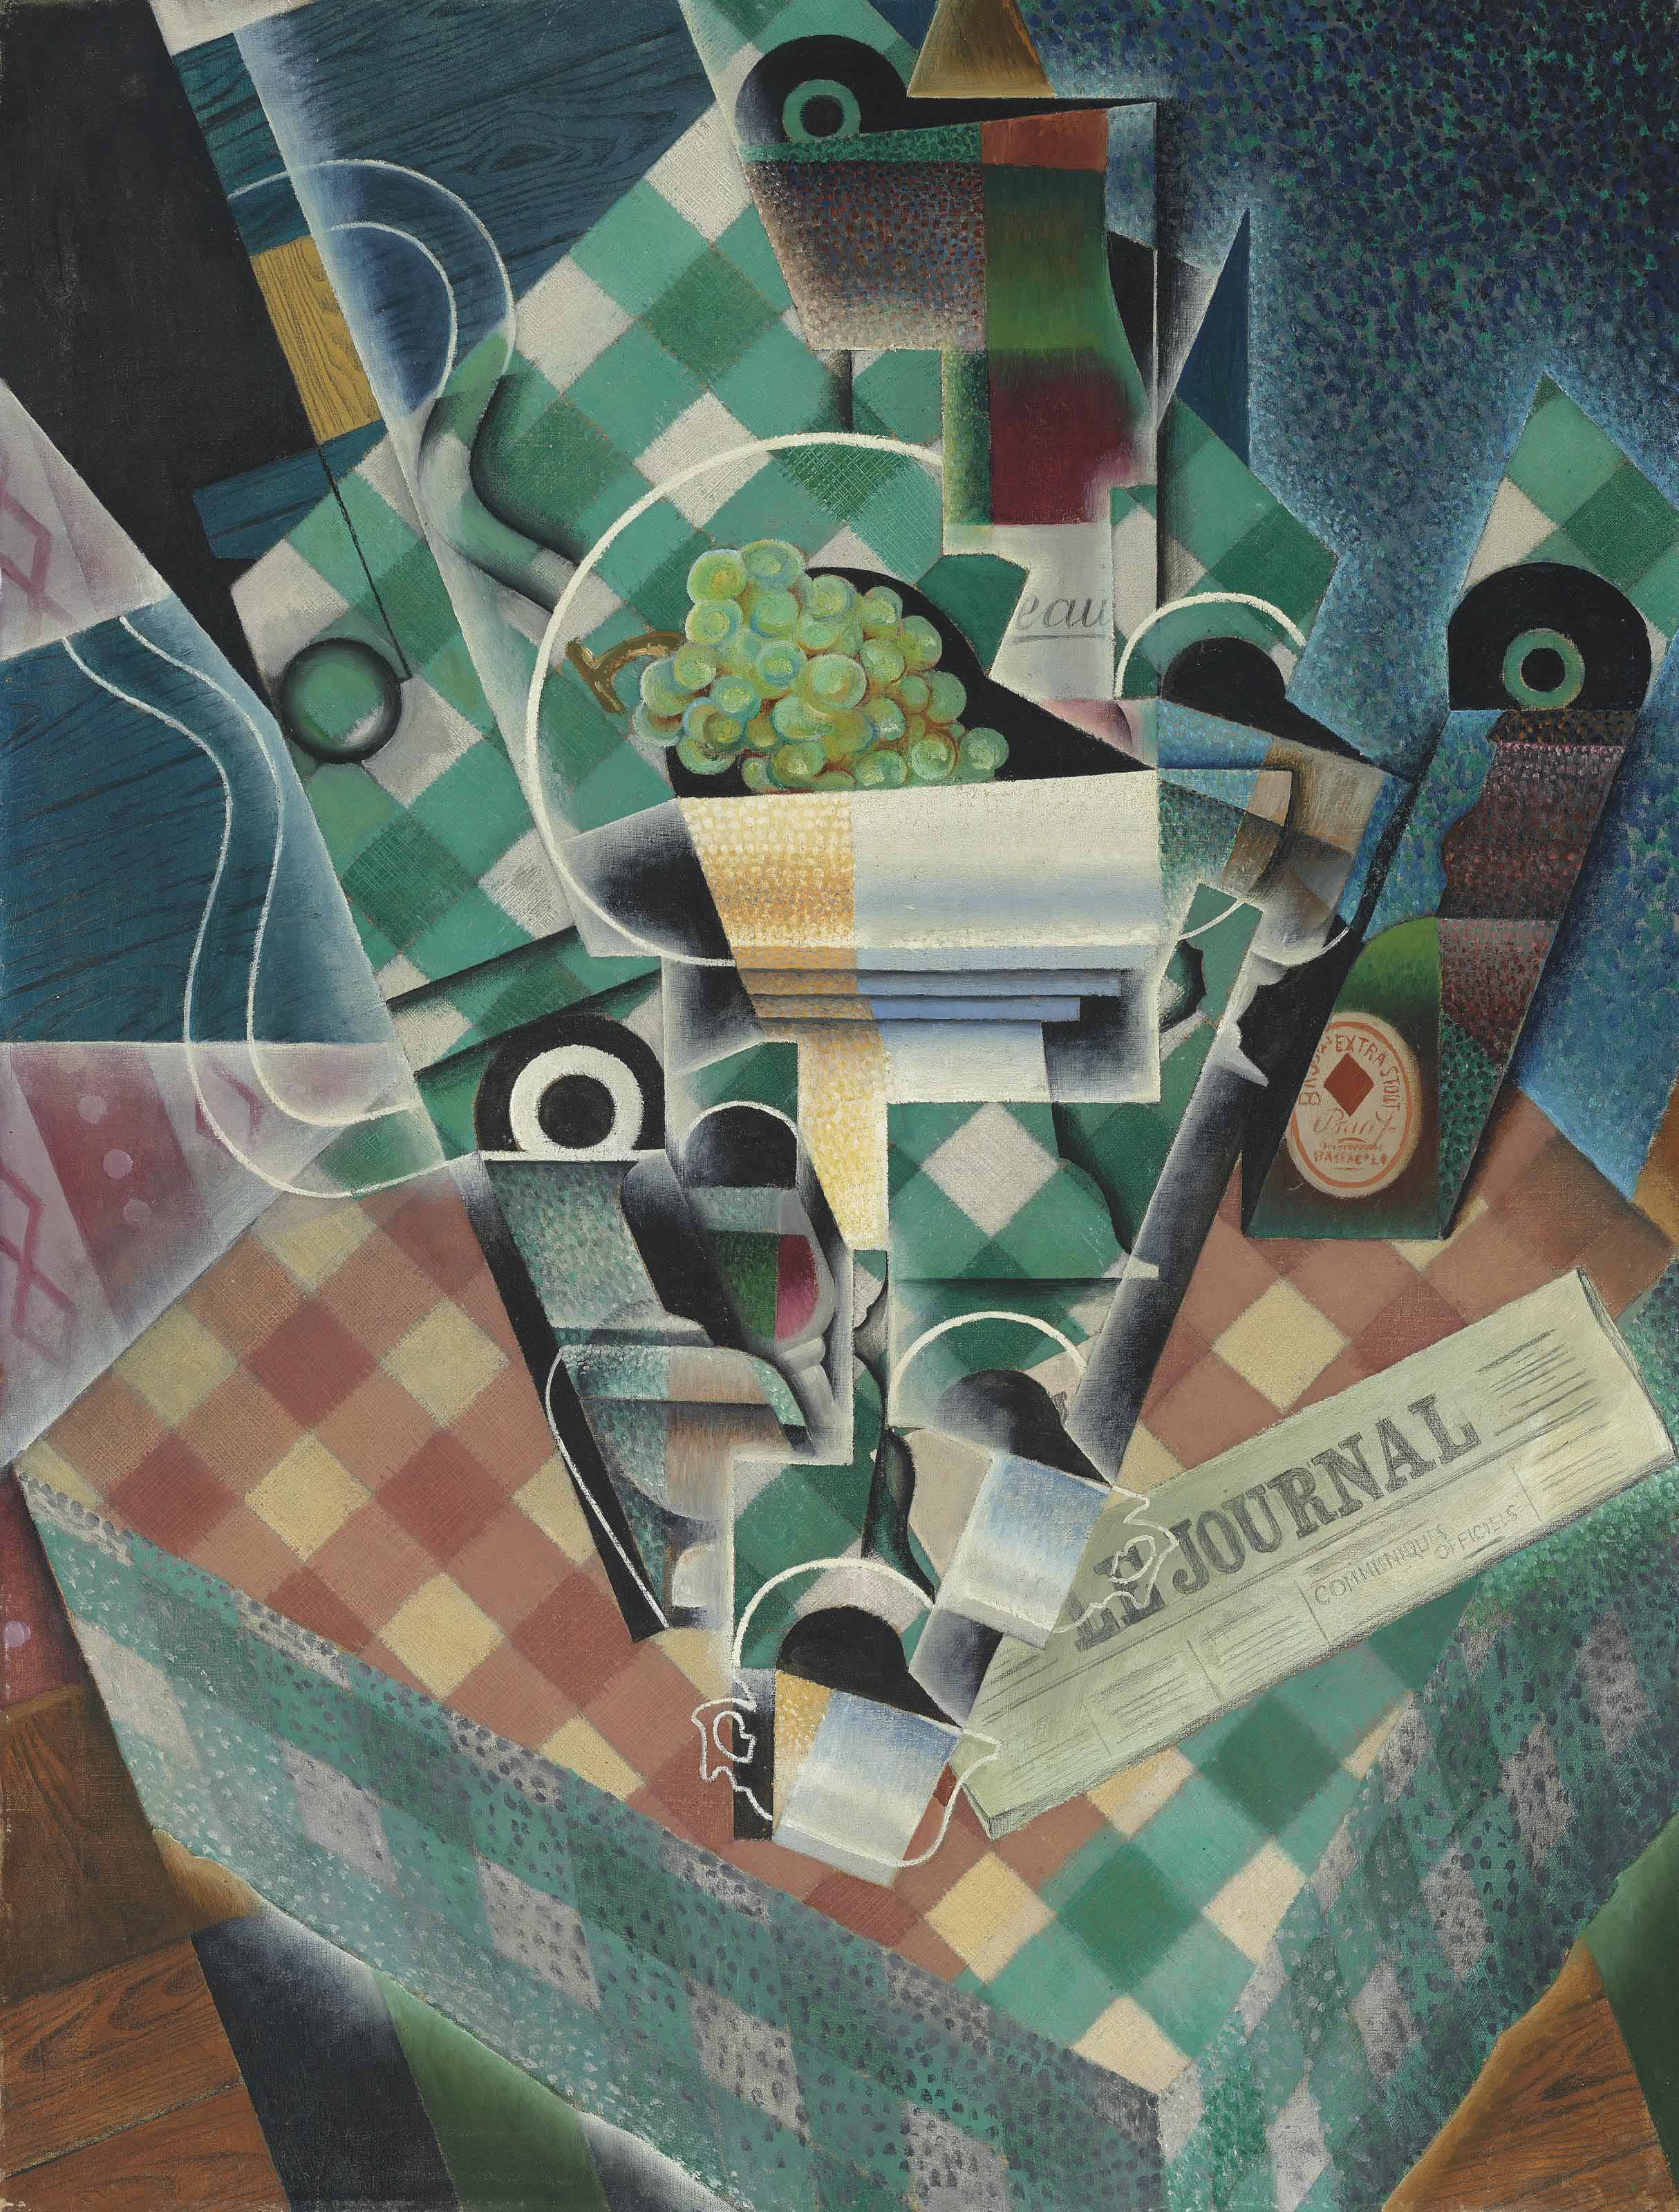 Juan Gris (1887-1927), Nature morte à la nappe à carreaux, 1915. Oil on canvas,45⅞ x 35⅛ in (116.5 x 89.3 cm). Sold for £34,802,500 on 4 February 2014at Christies in London